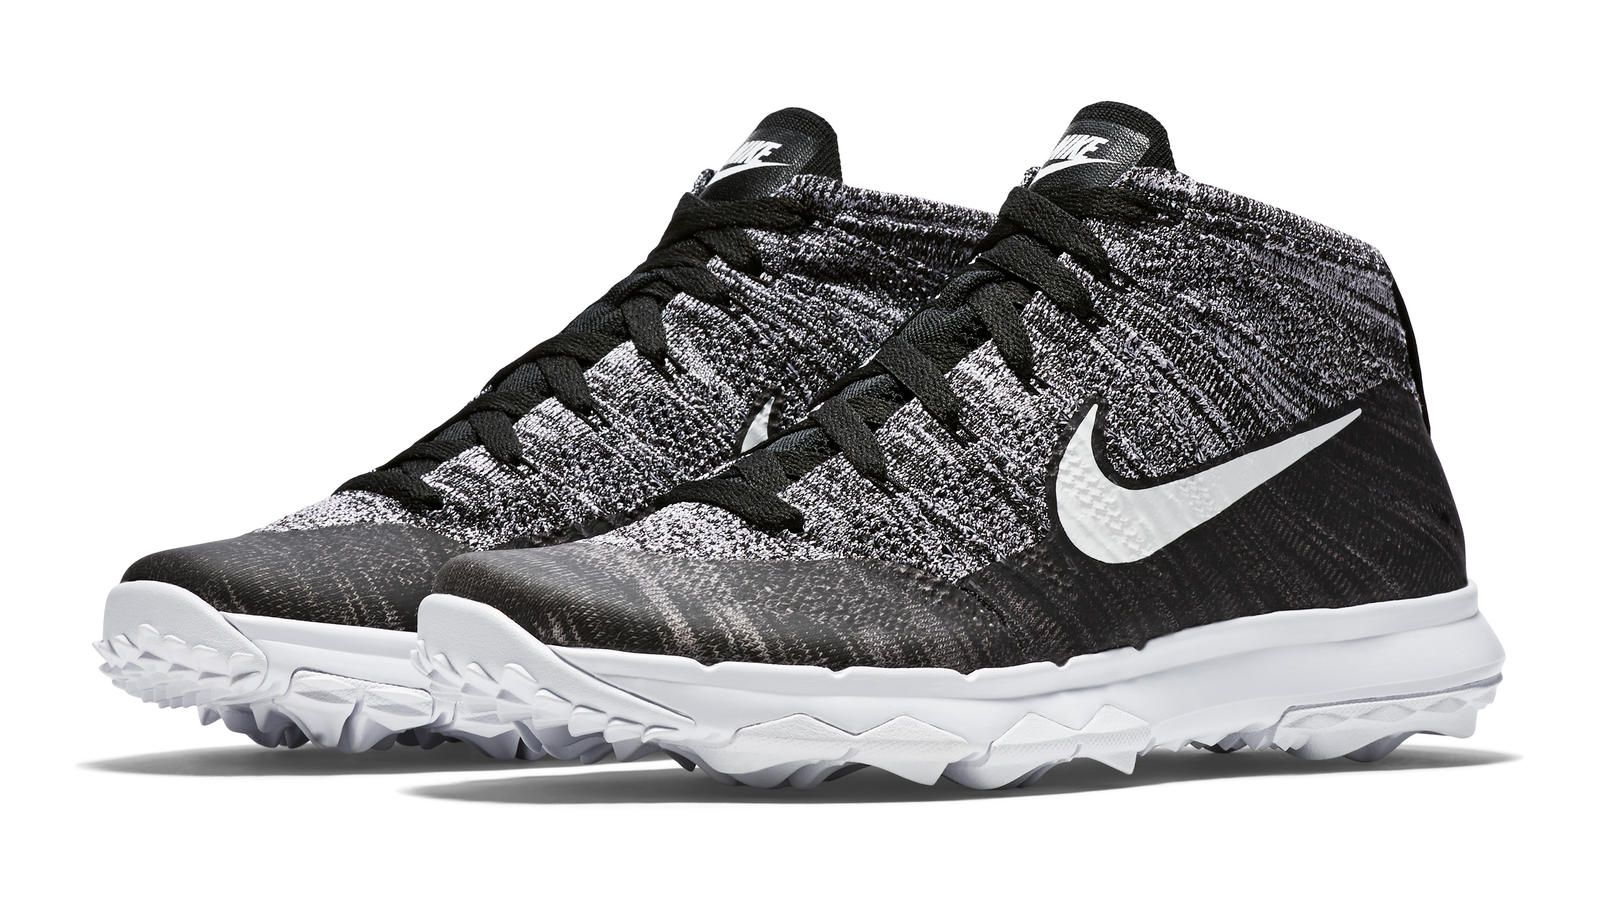 Nike News - Nike Flyknit Takes to The Course